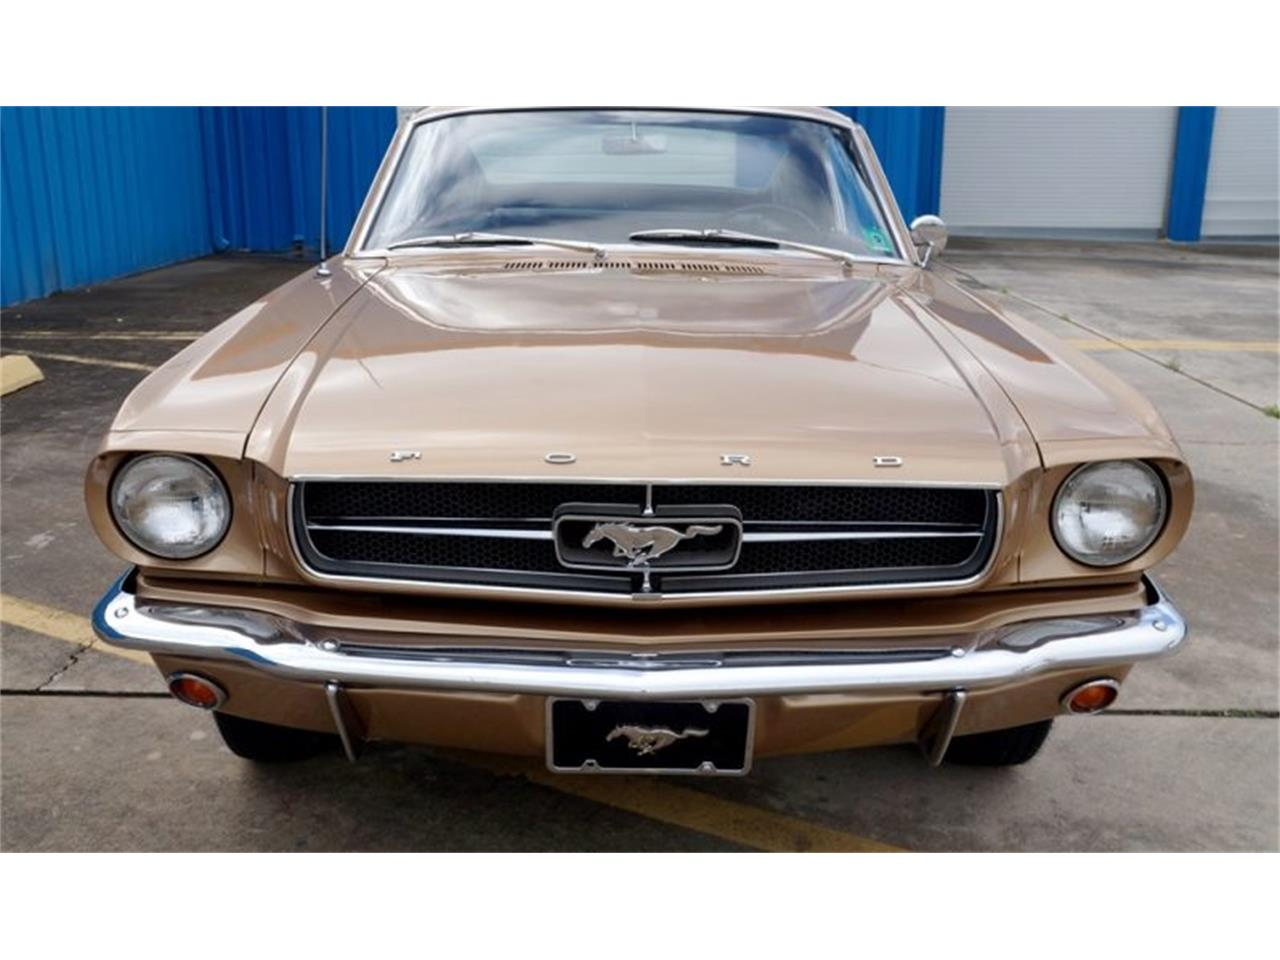 Large Picture of Classic '65 Ford Mustang located in Indianapolis Indiana - $37,500.00 Offered by a Private Seller - Q6QR